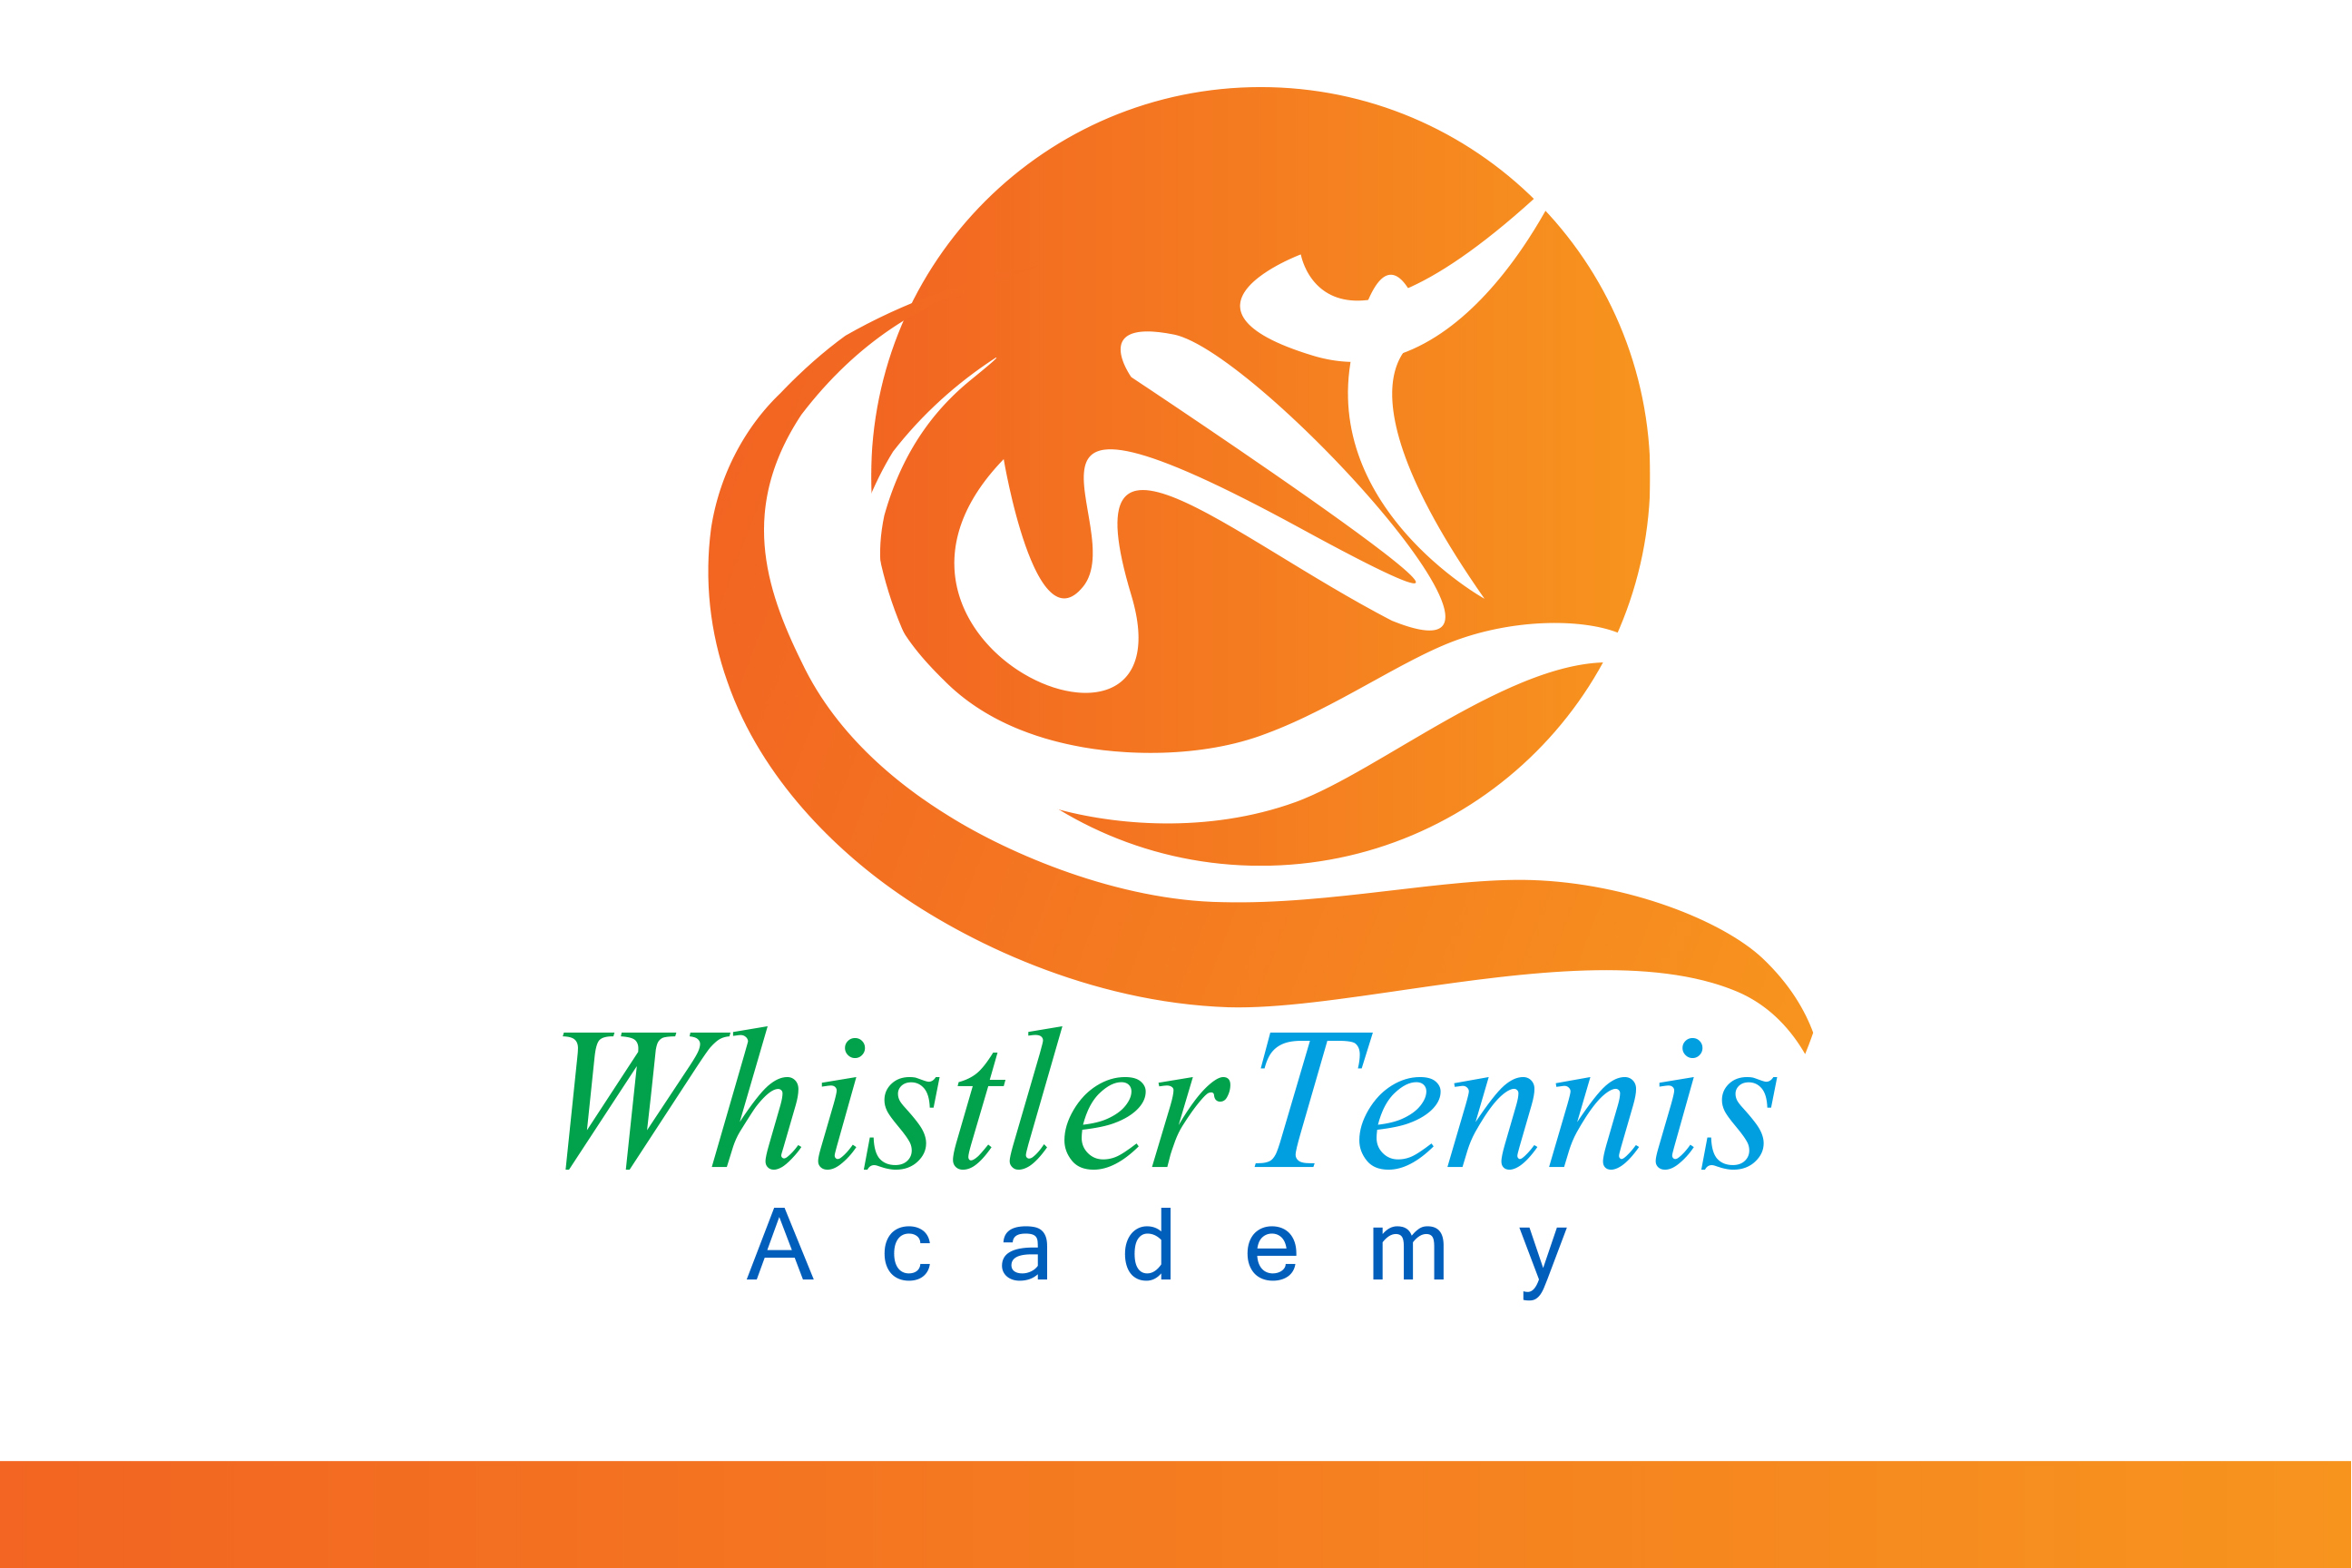 Logo Design by Leonard Anthony Alloso - Entry No. 260 in the Logo Design Contest Imaginative Logo Design for Whistler Tennis Academy.